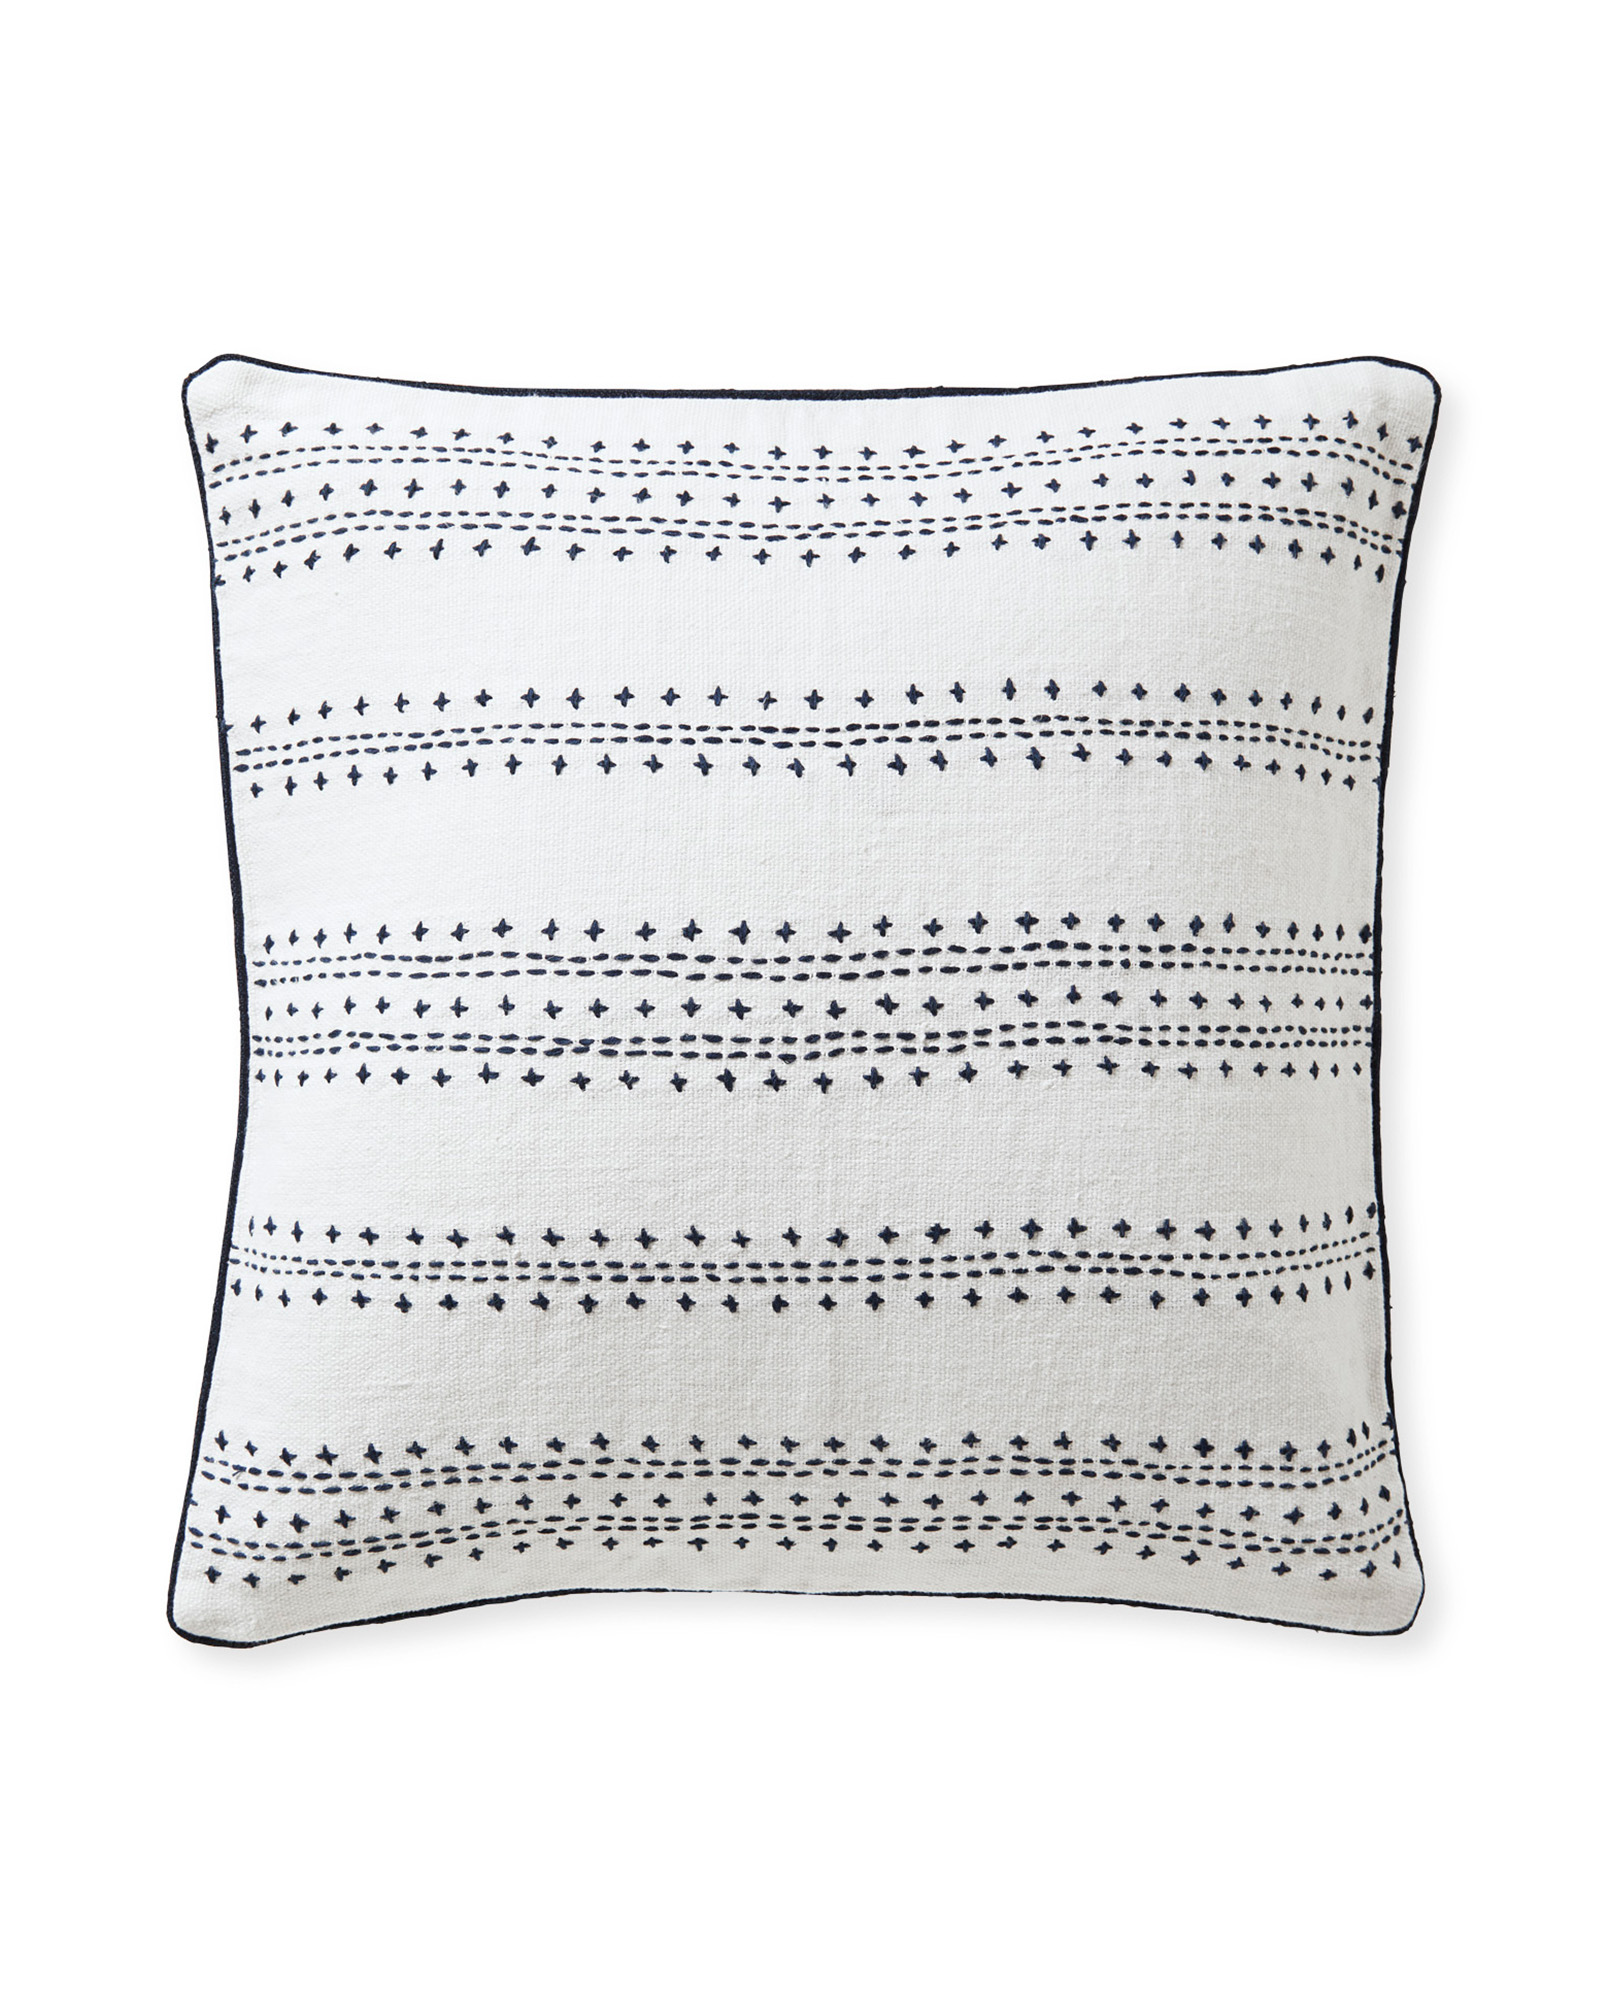 Catania Pillow Cover, Navy